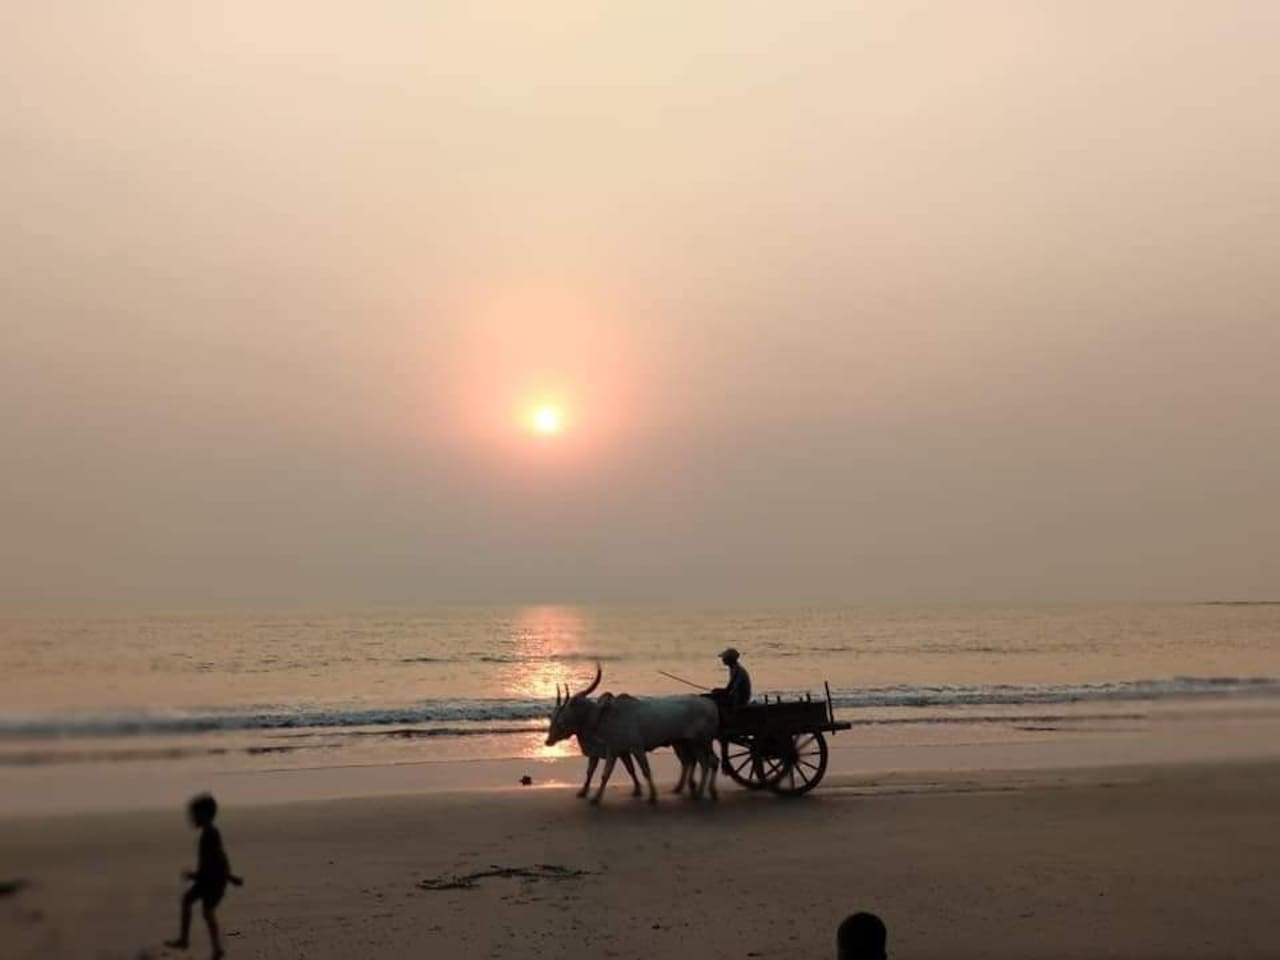 Nandgaon Beach Flat and safe bech for kids  If yourm are looking for a calm and peaceful non crowded place then nandgaon beach will meet your requirements